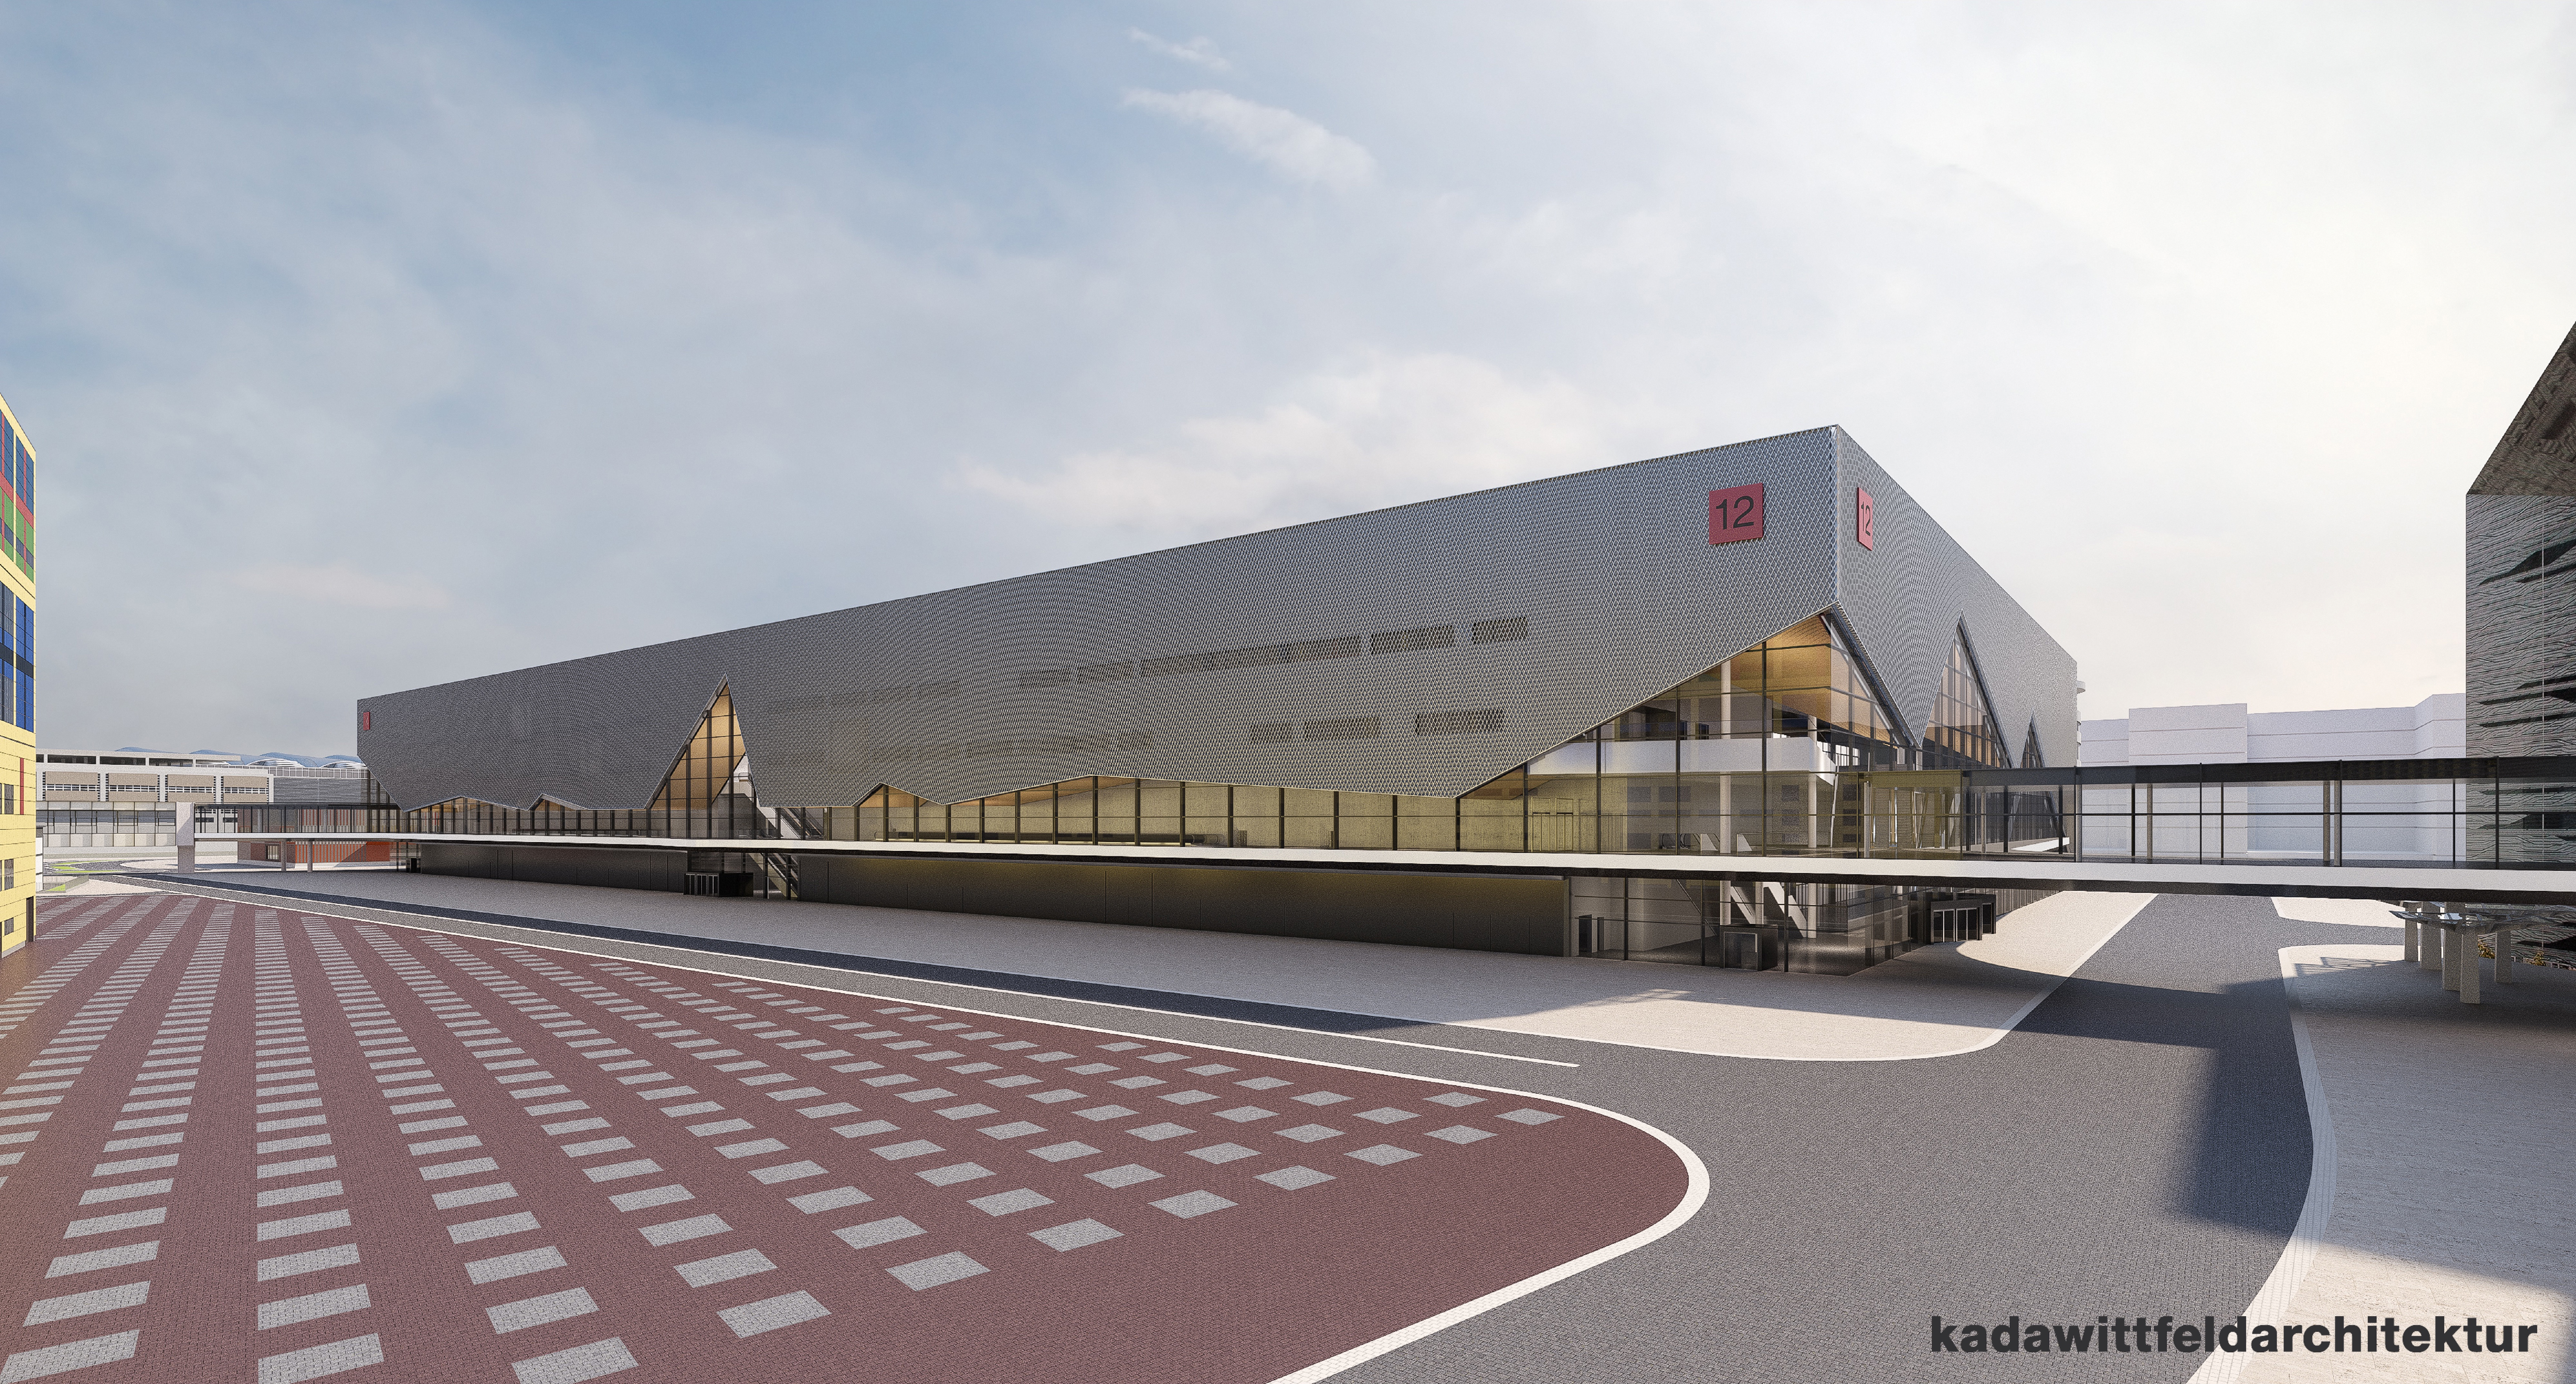 The new Exhibition Hall 12 will be used for IFFA 2019 for the first time (Source: Messe Frankfurt)